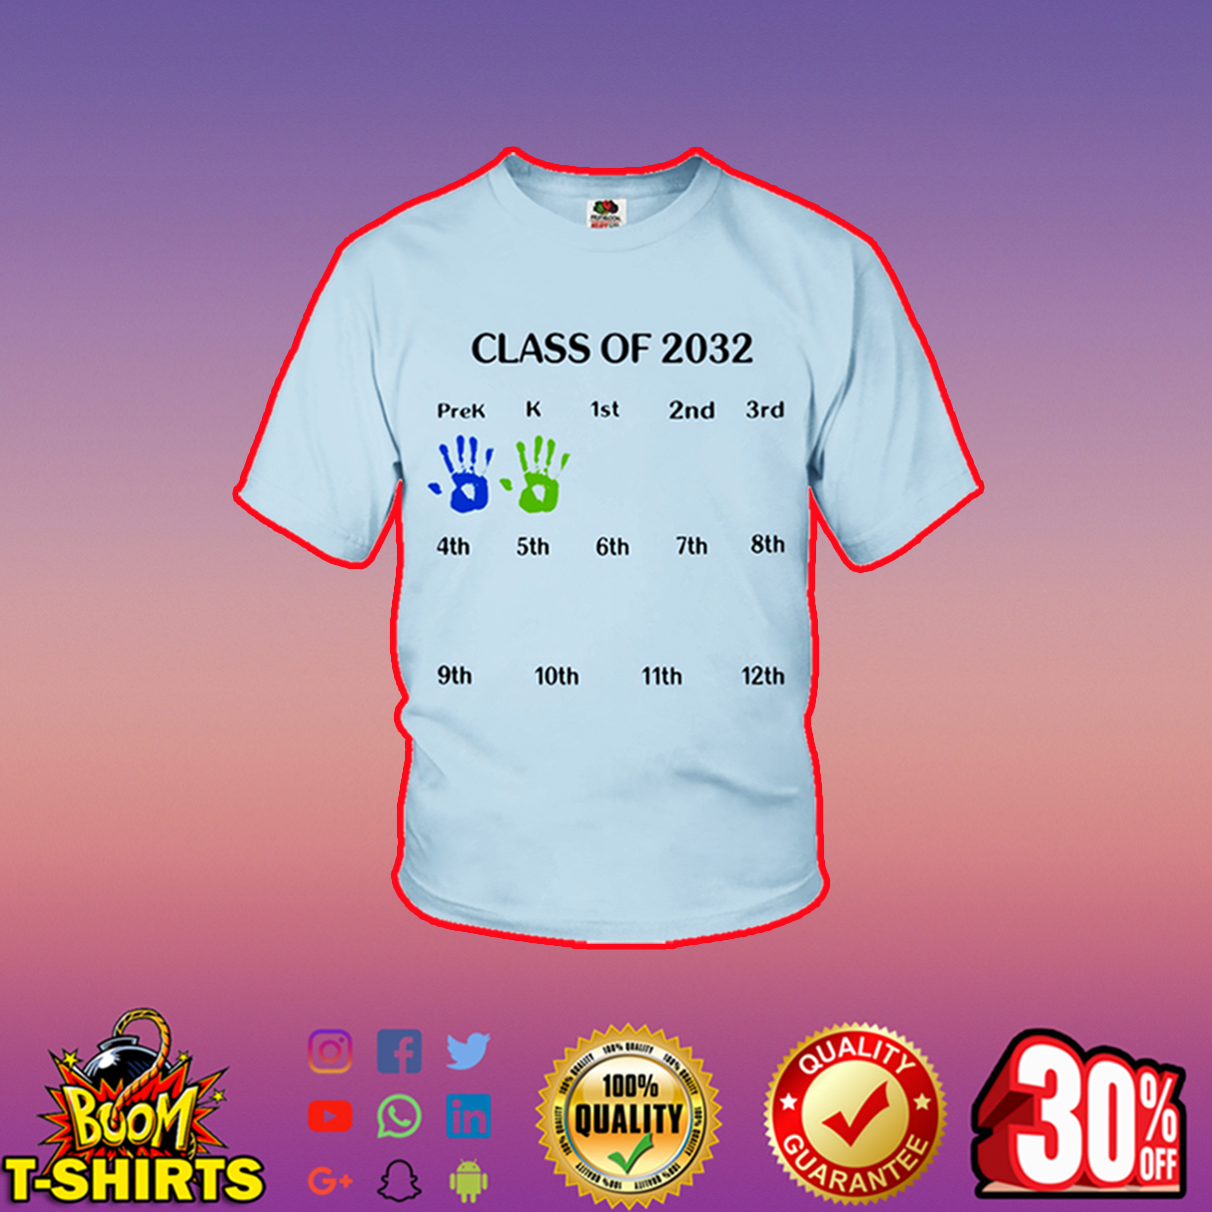 Class of 2032 youth t-shirt